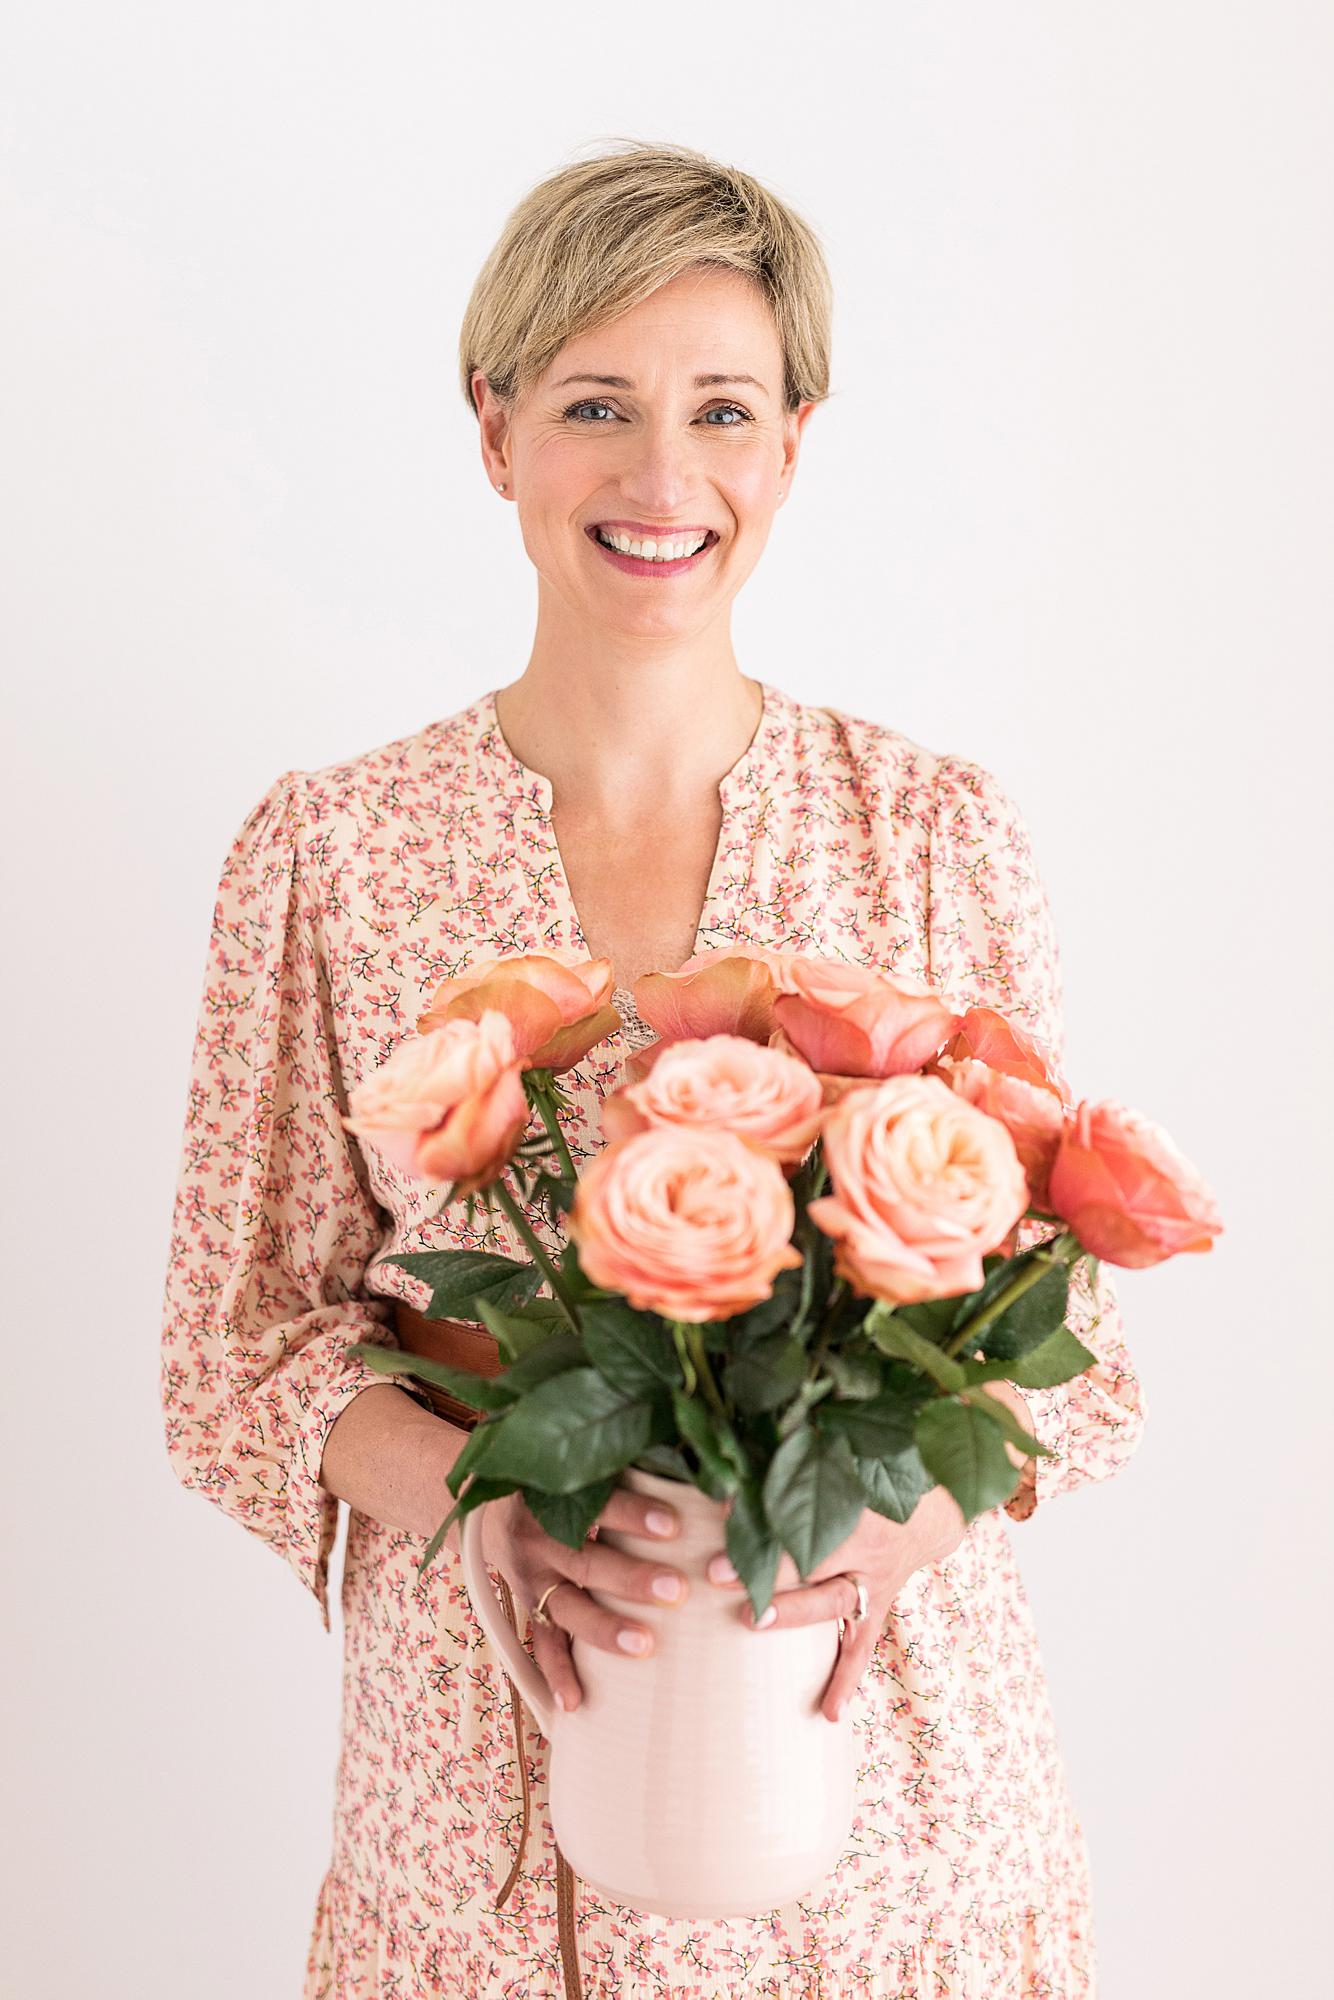 Florist holding a vase of flowers smiles in a peach floral print dress during her Personal Branding Shoot in Suffolk